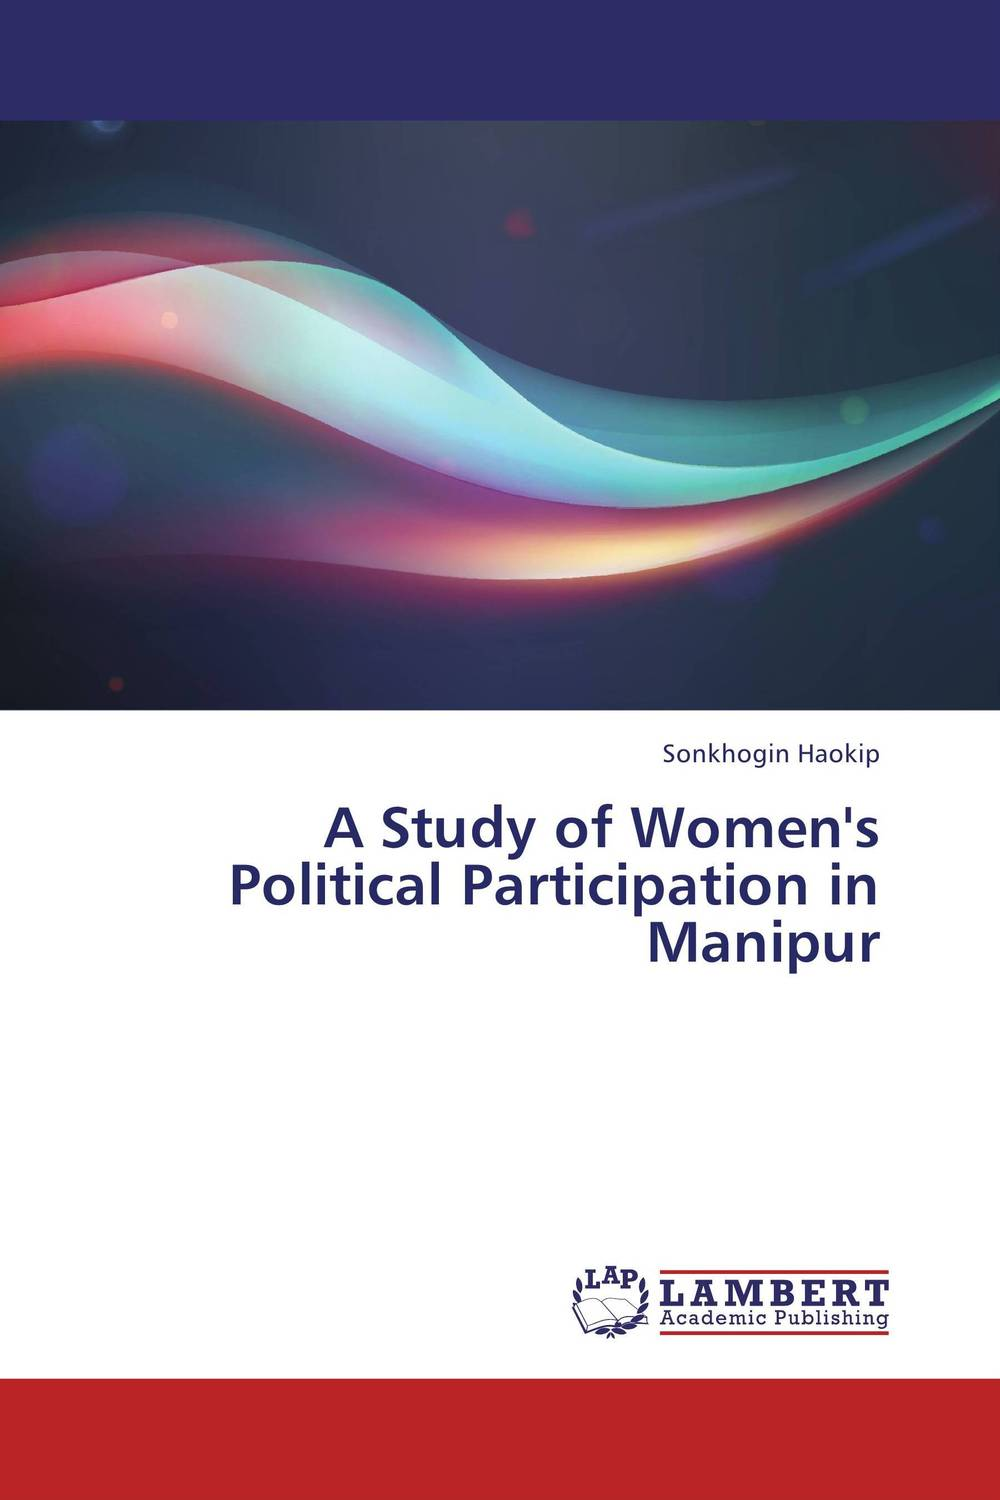 A Study of Women's Political Participation in Manipur chrome finished bathroom sink tub faucet single handle waterfall spout mixer tap solid brass page 5